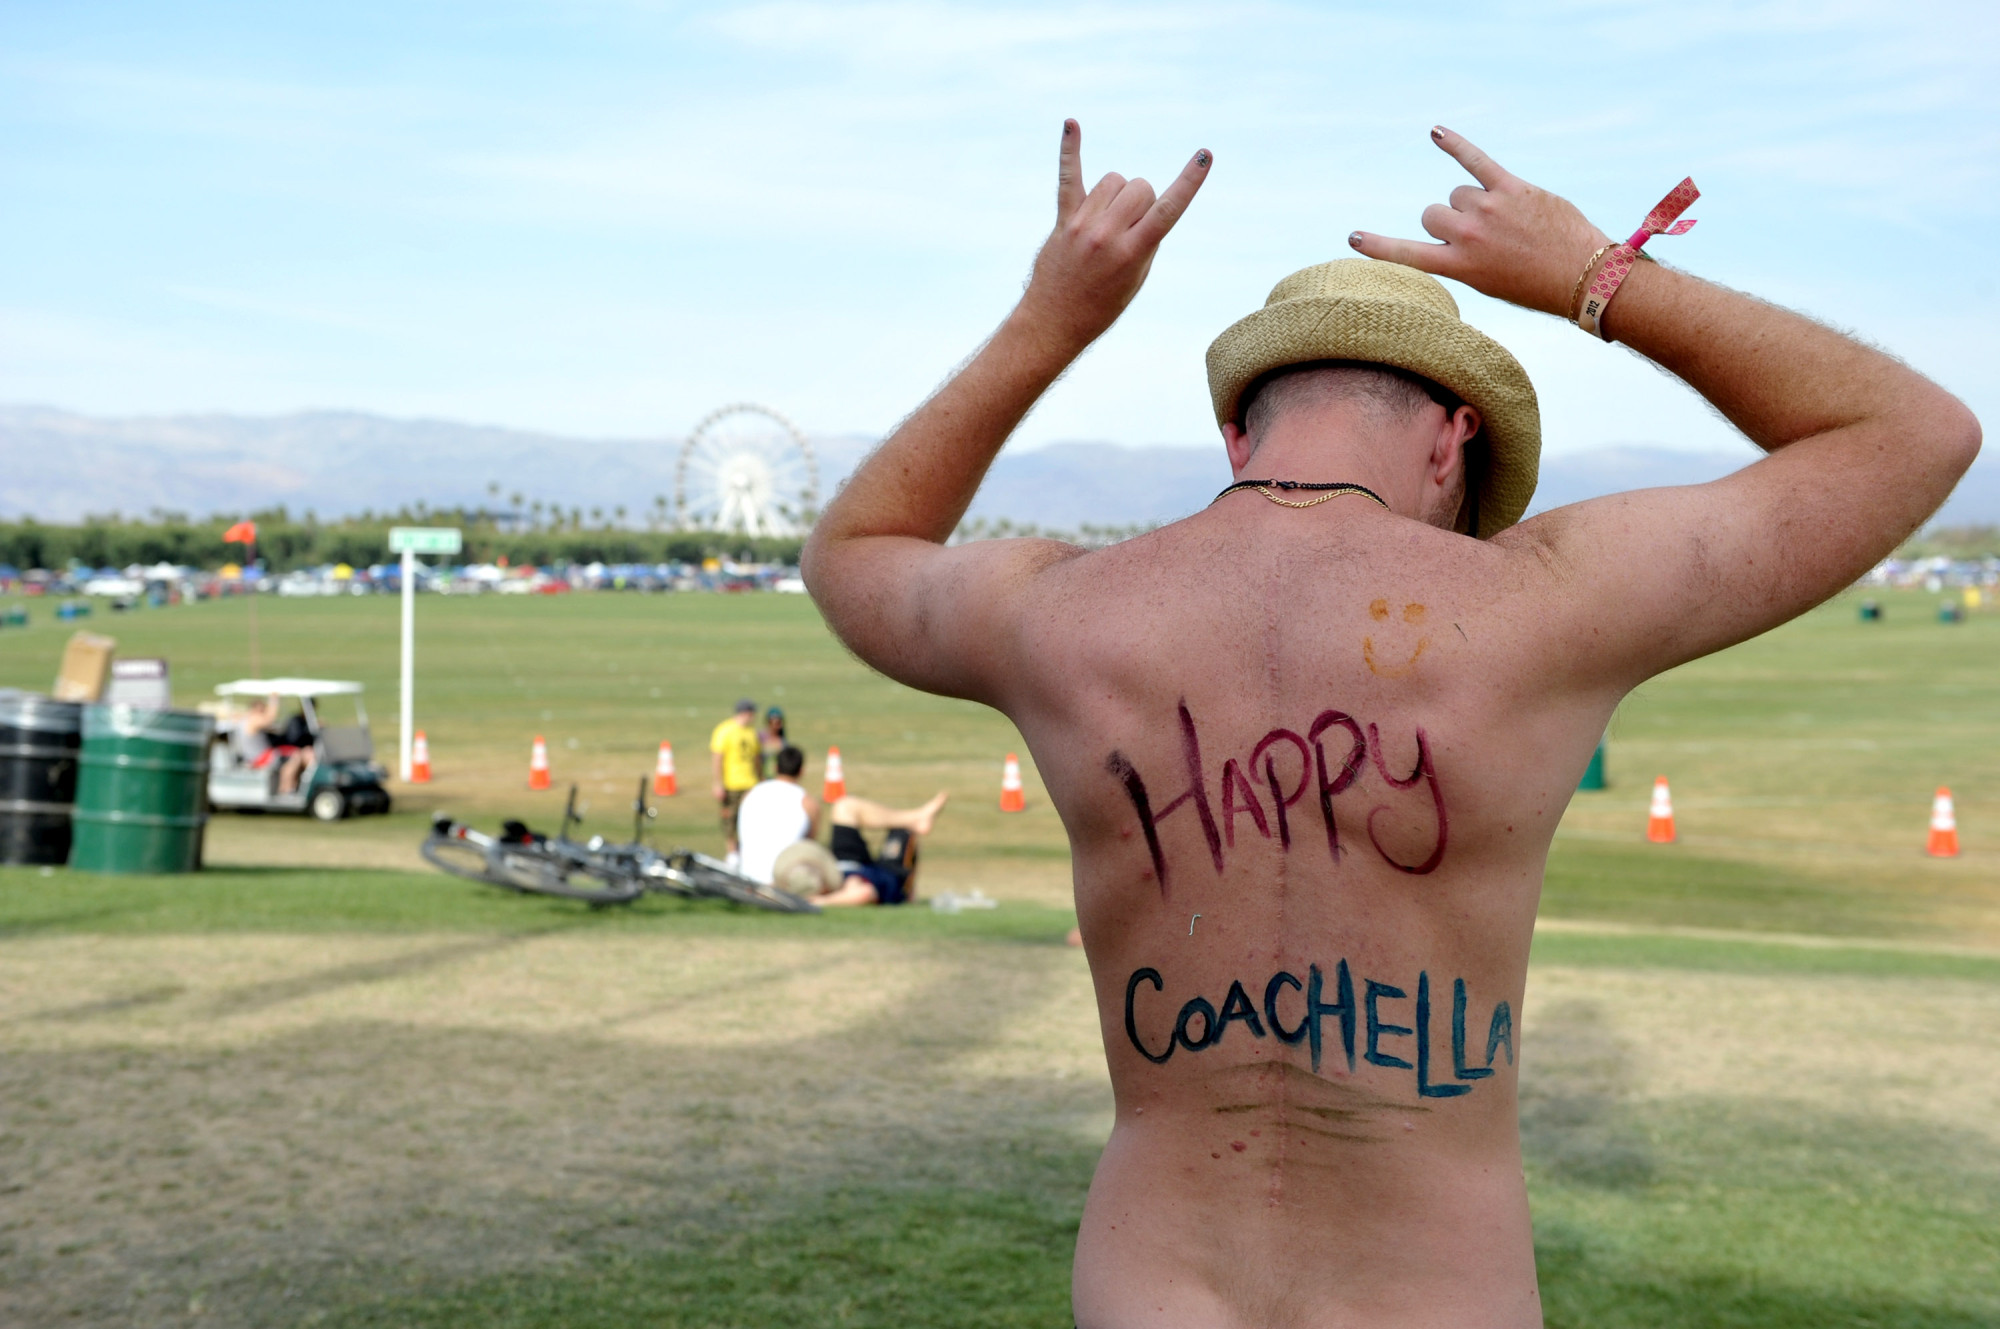 10 Awesome Things to See at Coachella Besides the Music  DFTM Travel